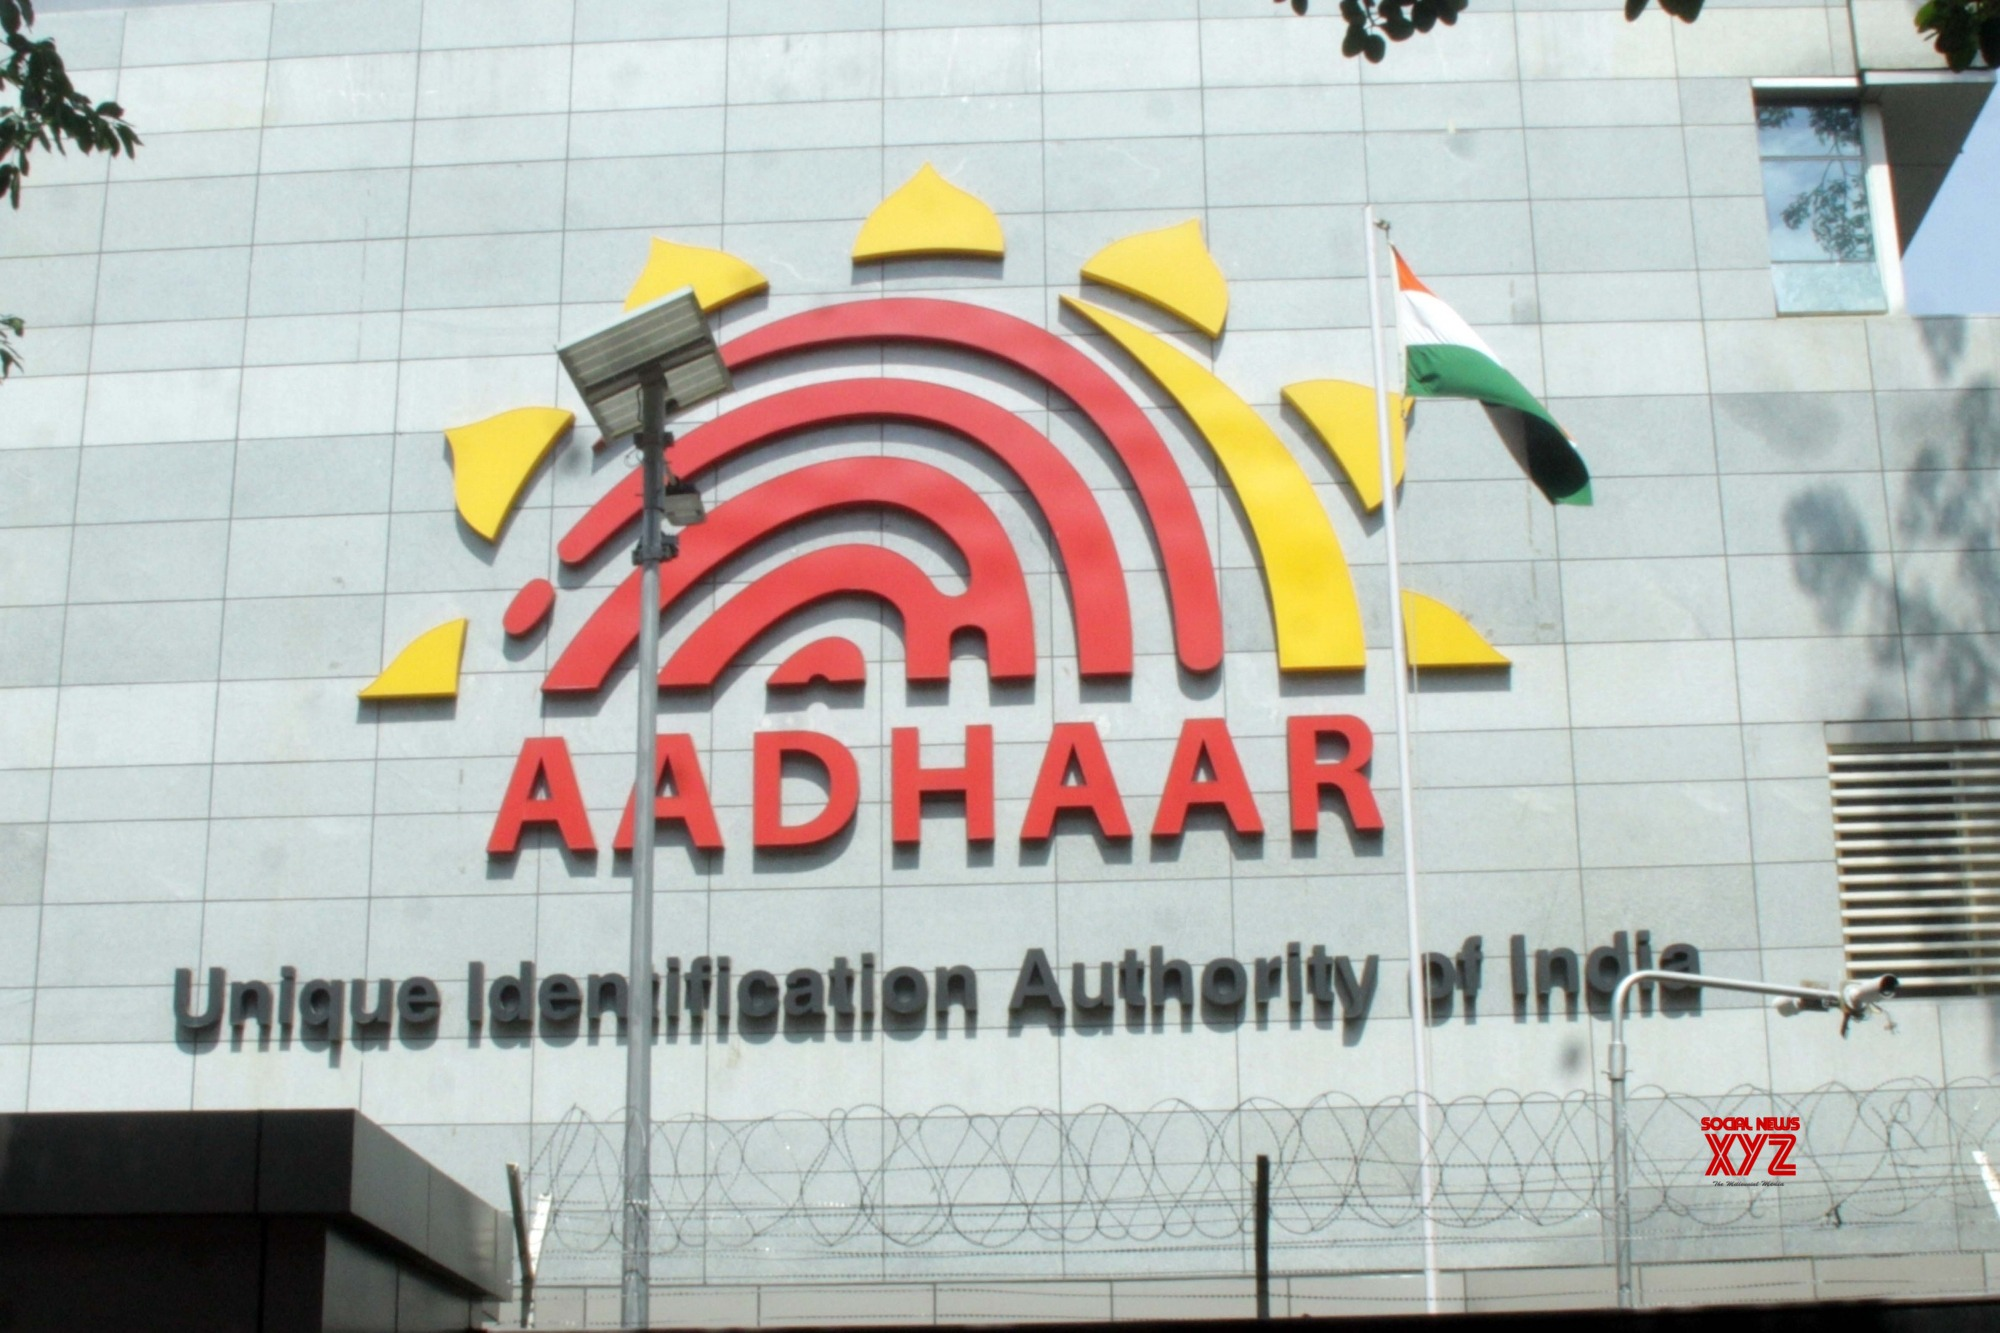 Aadhaar, India Stack key to PM's 'One Nation One Ration Card' outreach: Experts